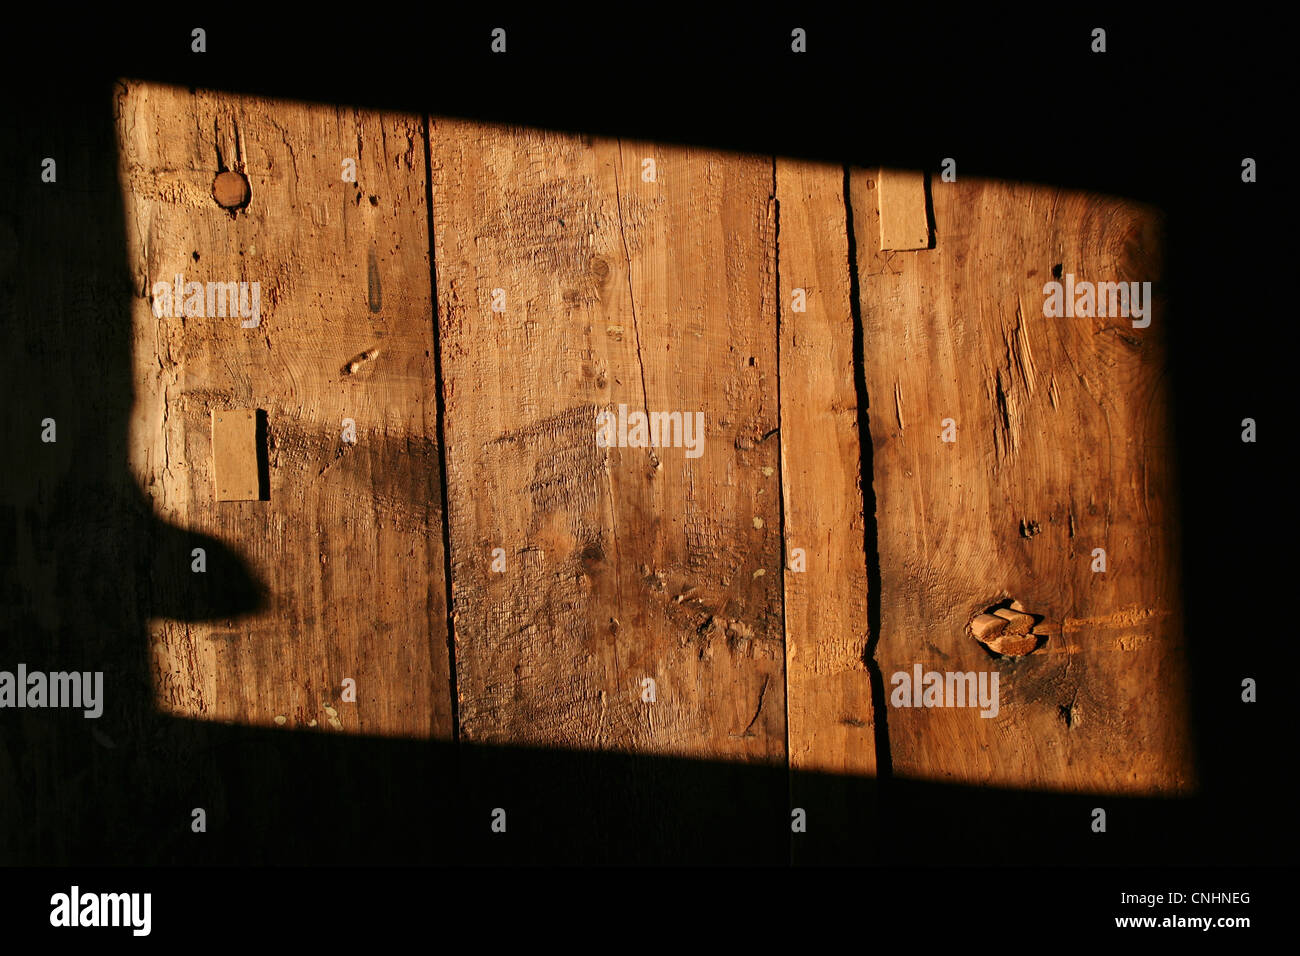 A rectangle shape of sunlight on a wooden structure, close-up - Stock Image